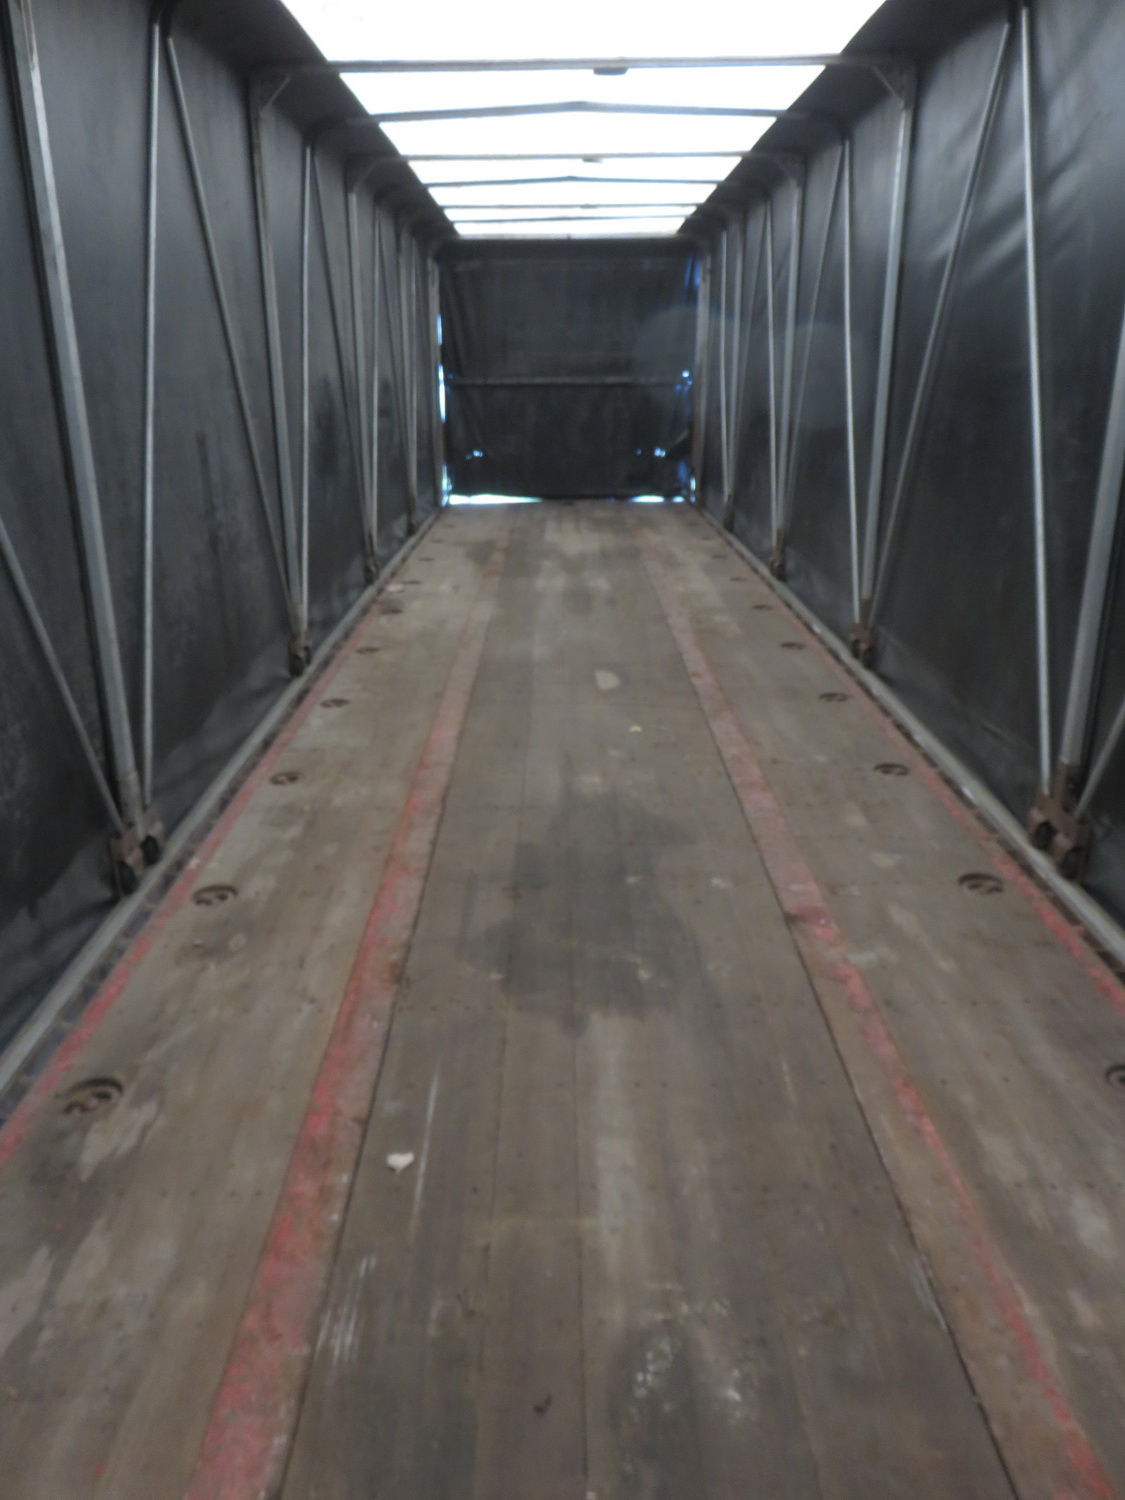 2006 TRANSCRAFT TL2, 53' X TRIAXLE FLATBED CURTAIN SIDE ROLL TITE TRAILER - S/N 1TTF5330161080389 - Image 5 of 5